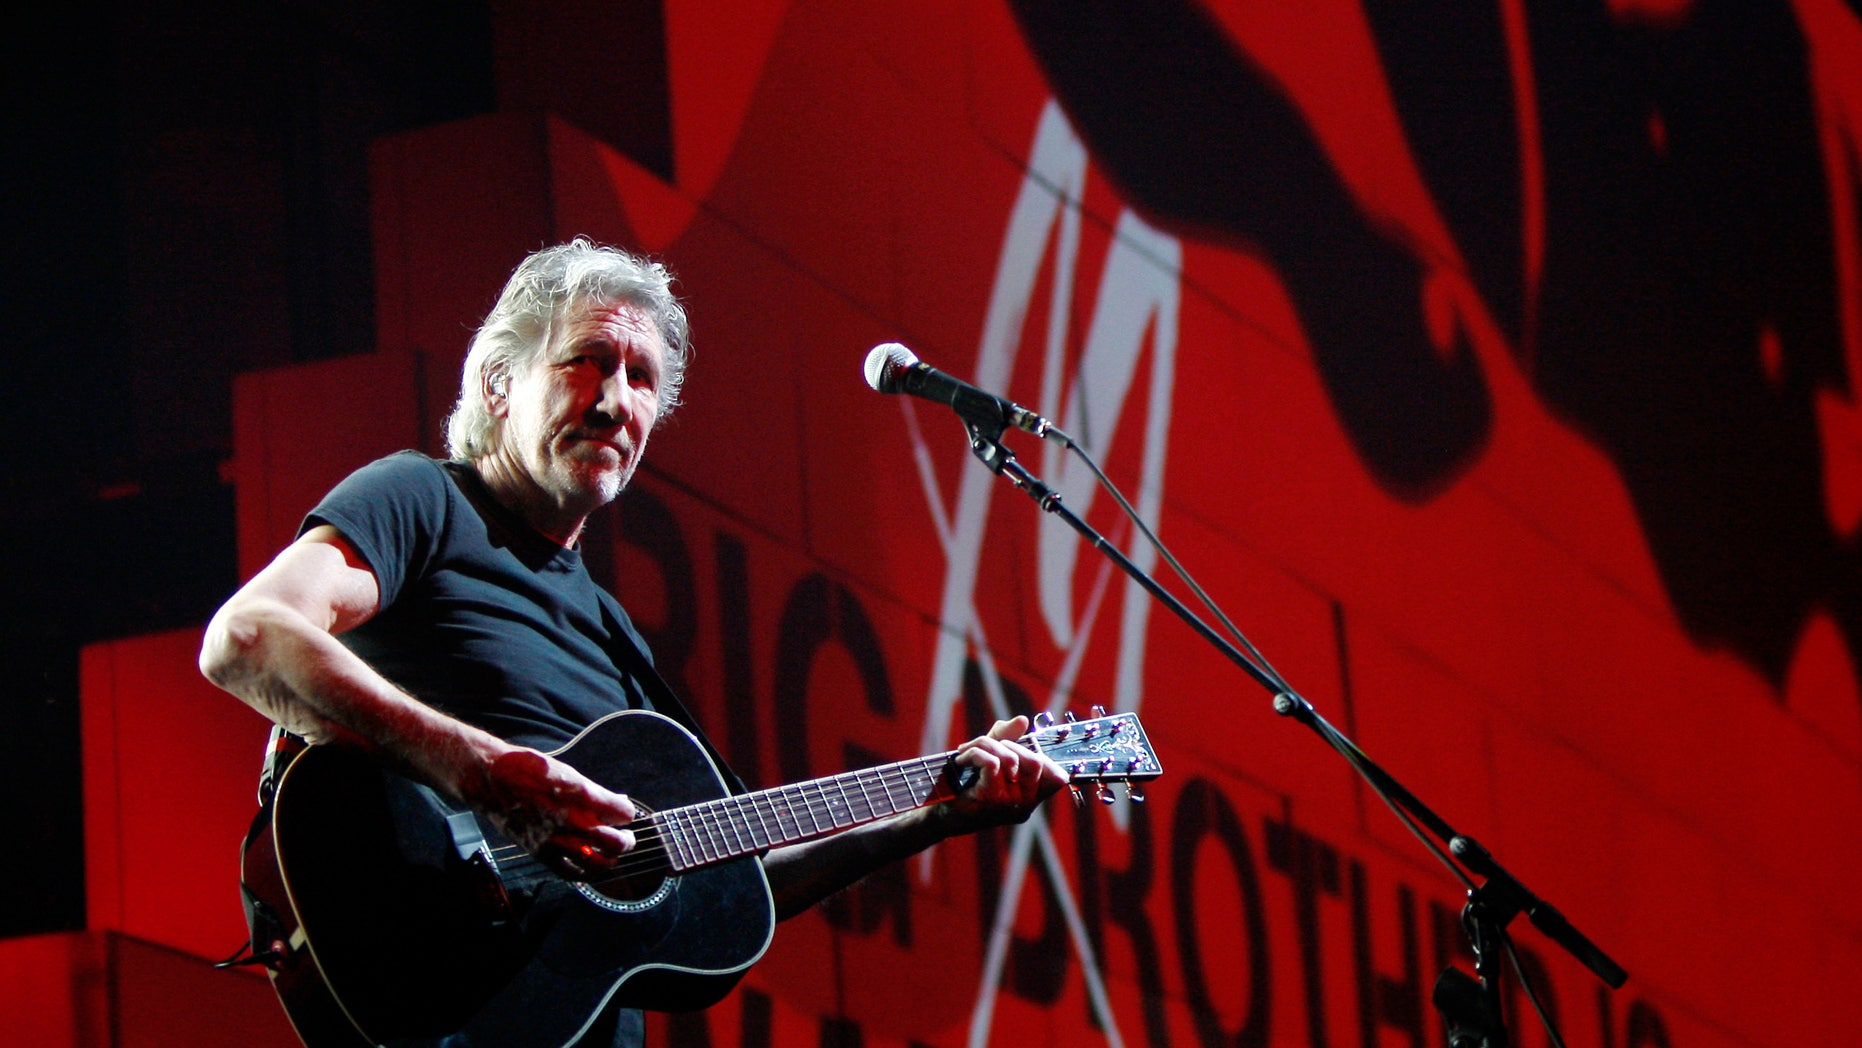 """FILE - In this April 1, 2011 file photo, Roger Waters performs during his """"The Wall Tour 2010/2011"""" in Milan, Italy. Now that his three-year world tour for """"The Wall"""" has finally come to an end, Waters wants to set the record straight over criticism he's received from Jewish groups regarding his use of the Star of David symbol in the show and his support for a cultural boycott of Israel. (AP Photo/Antonio Calanni, File)"""